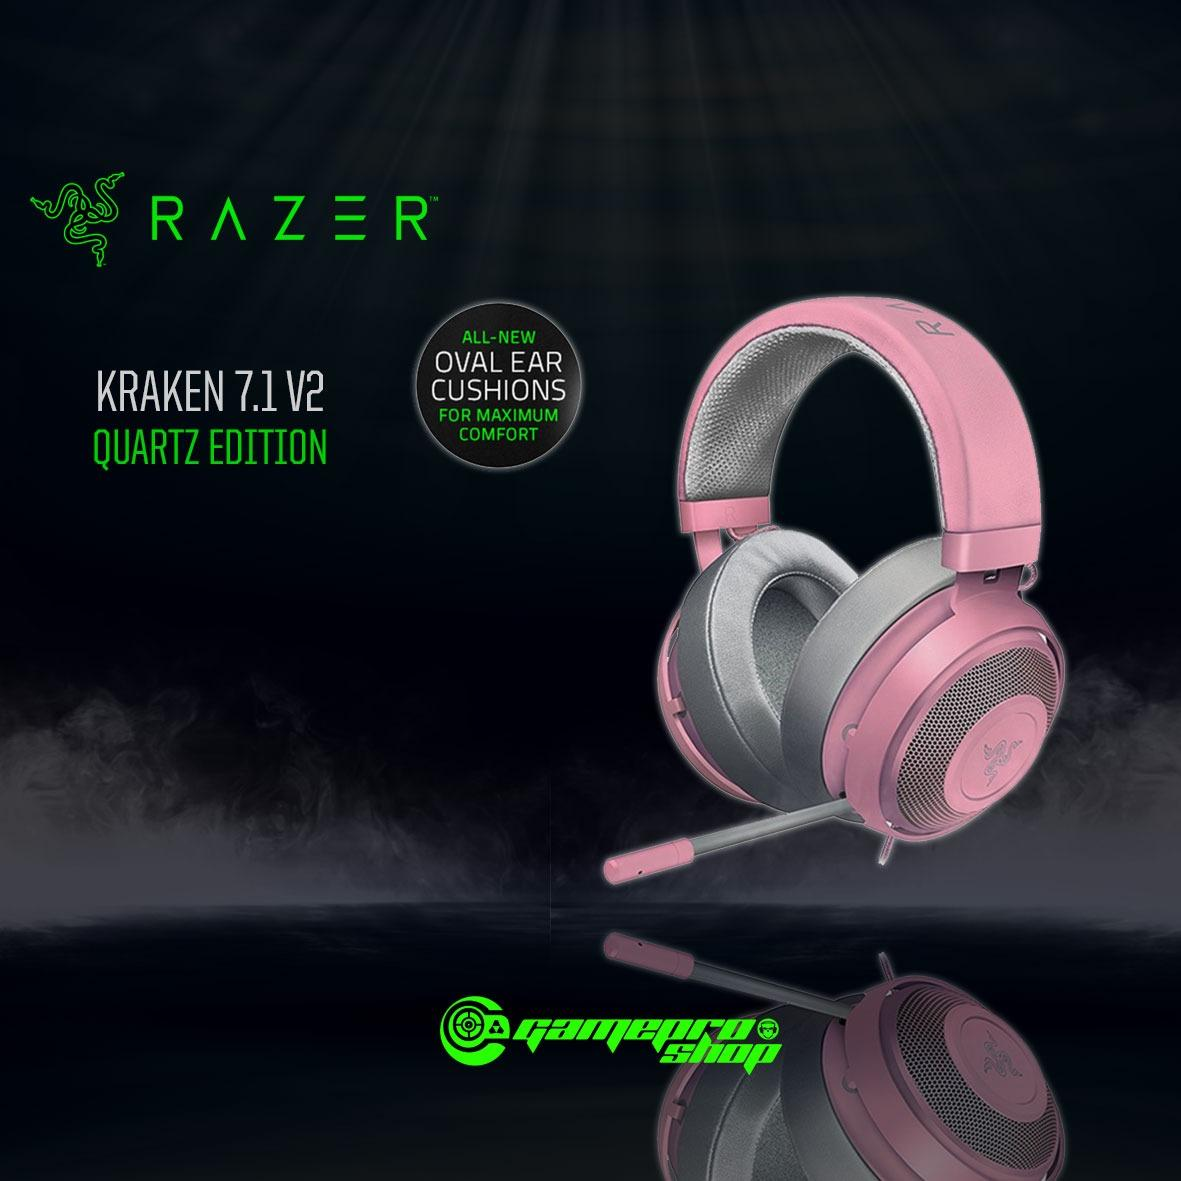 Razer Kraken PRO V2 Gaming Headset (Quartz Edition) OVAL EAR CUSHIONS  *GSS PROMO*